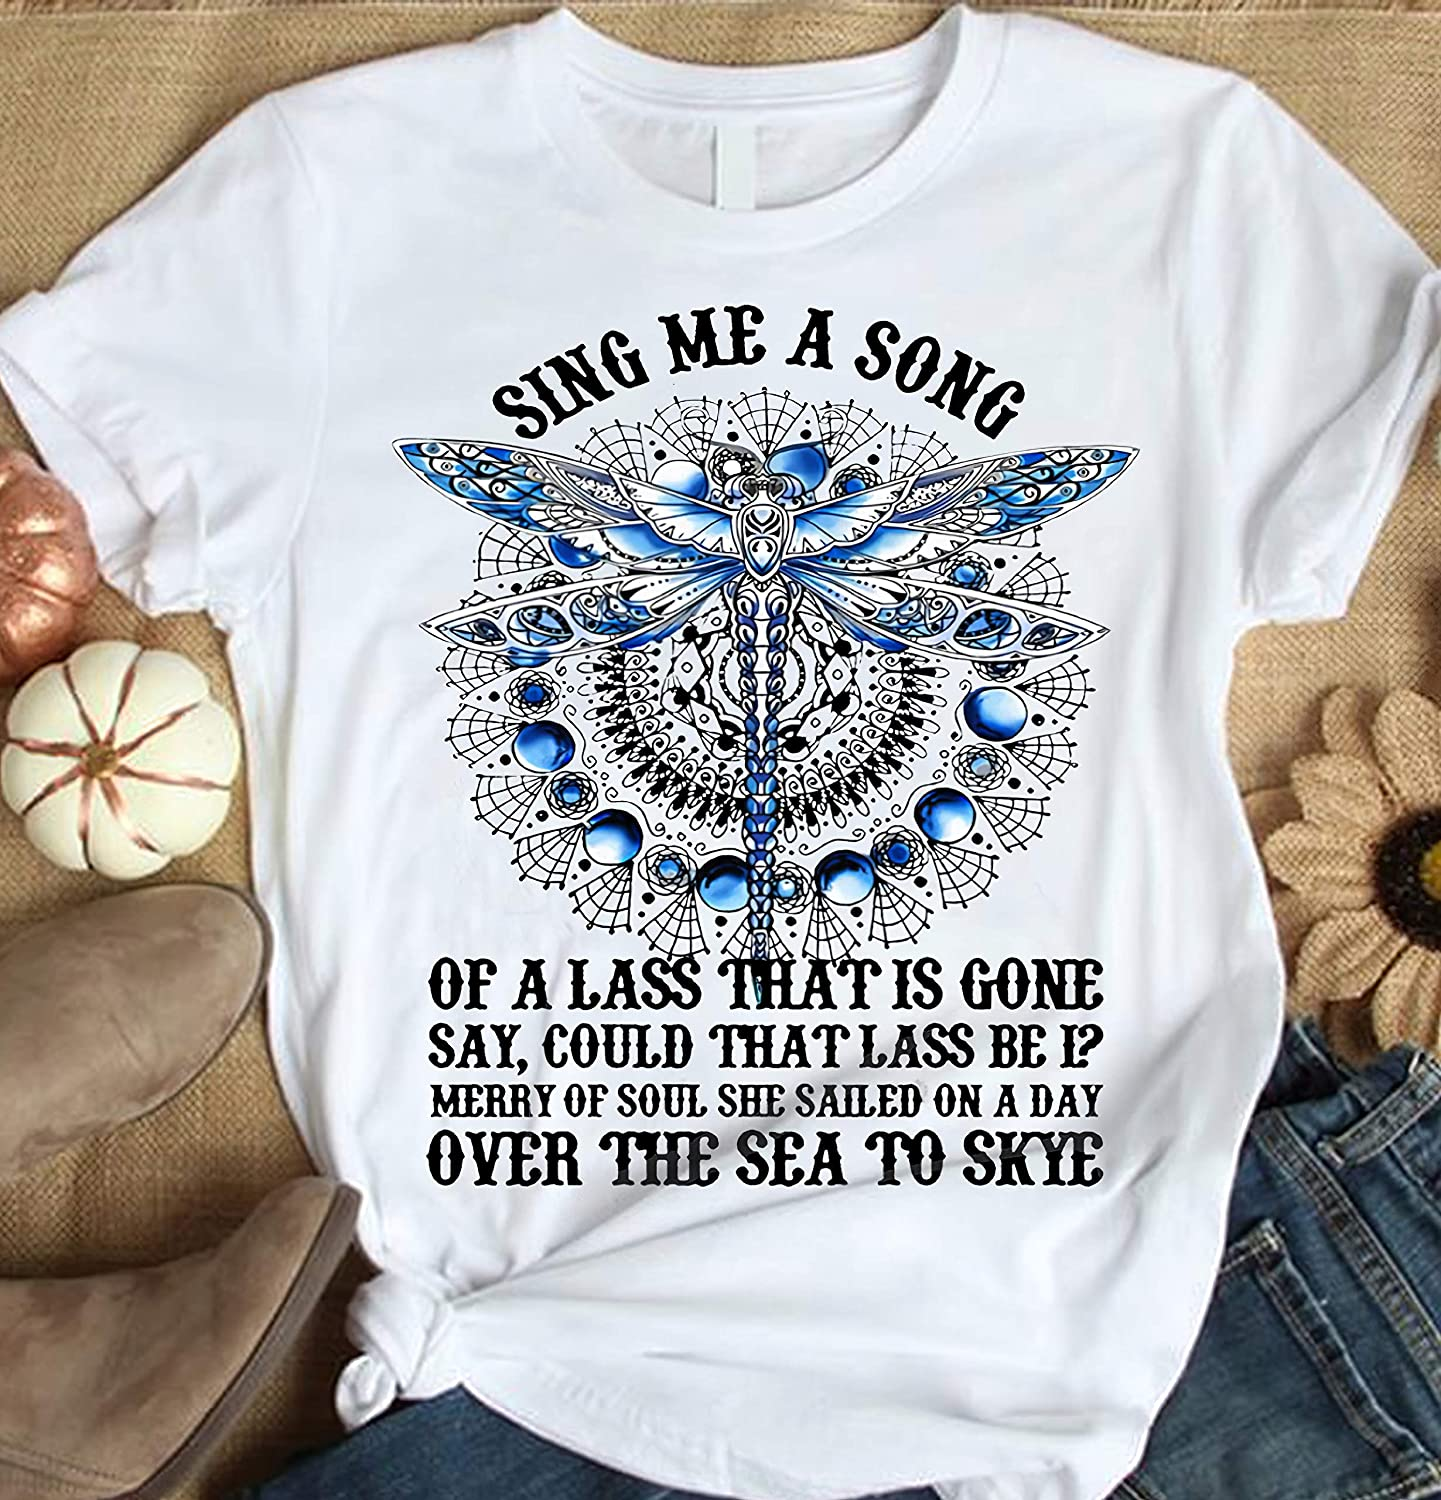 Dragonfly Sing Me a song of a lass that is gone over the sea to skye shirt funny Unisex Short Long Sleeve Ladies V-Neck Tank Men Women Tee Gifts